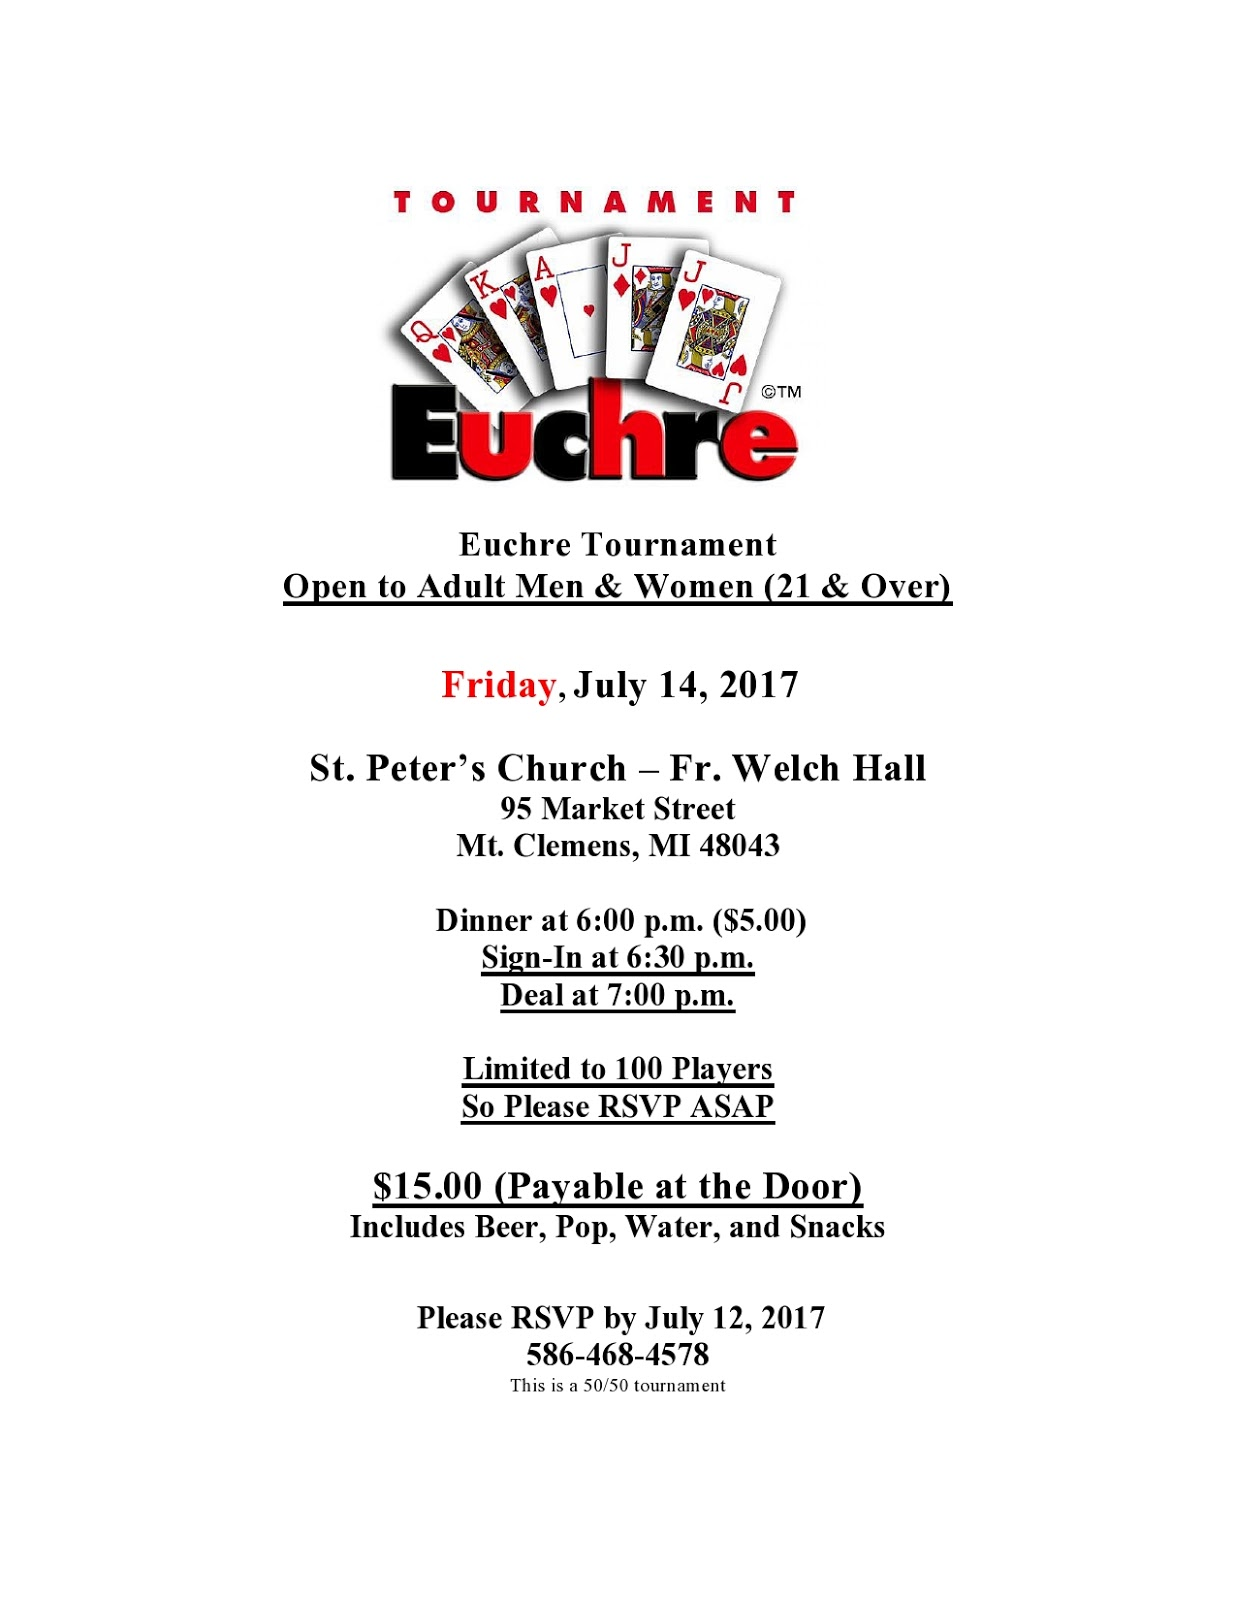 It is an image of Smart Euchre Tournament Bracket